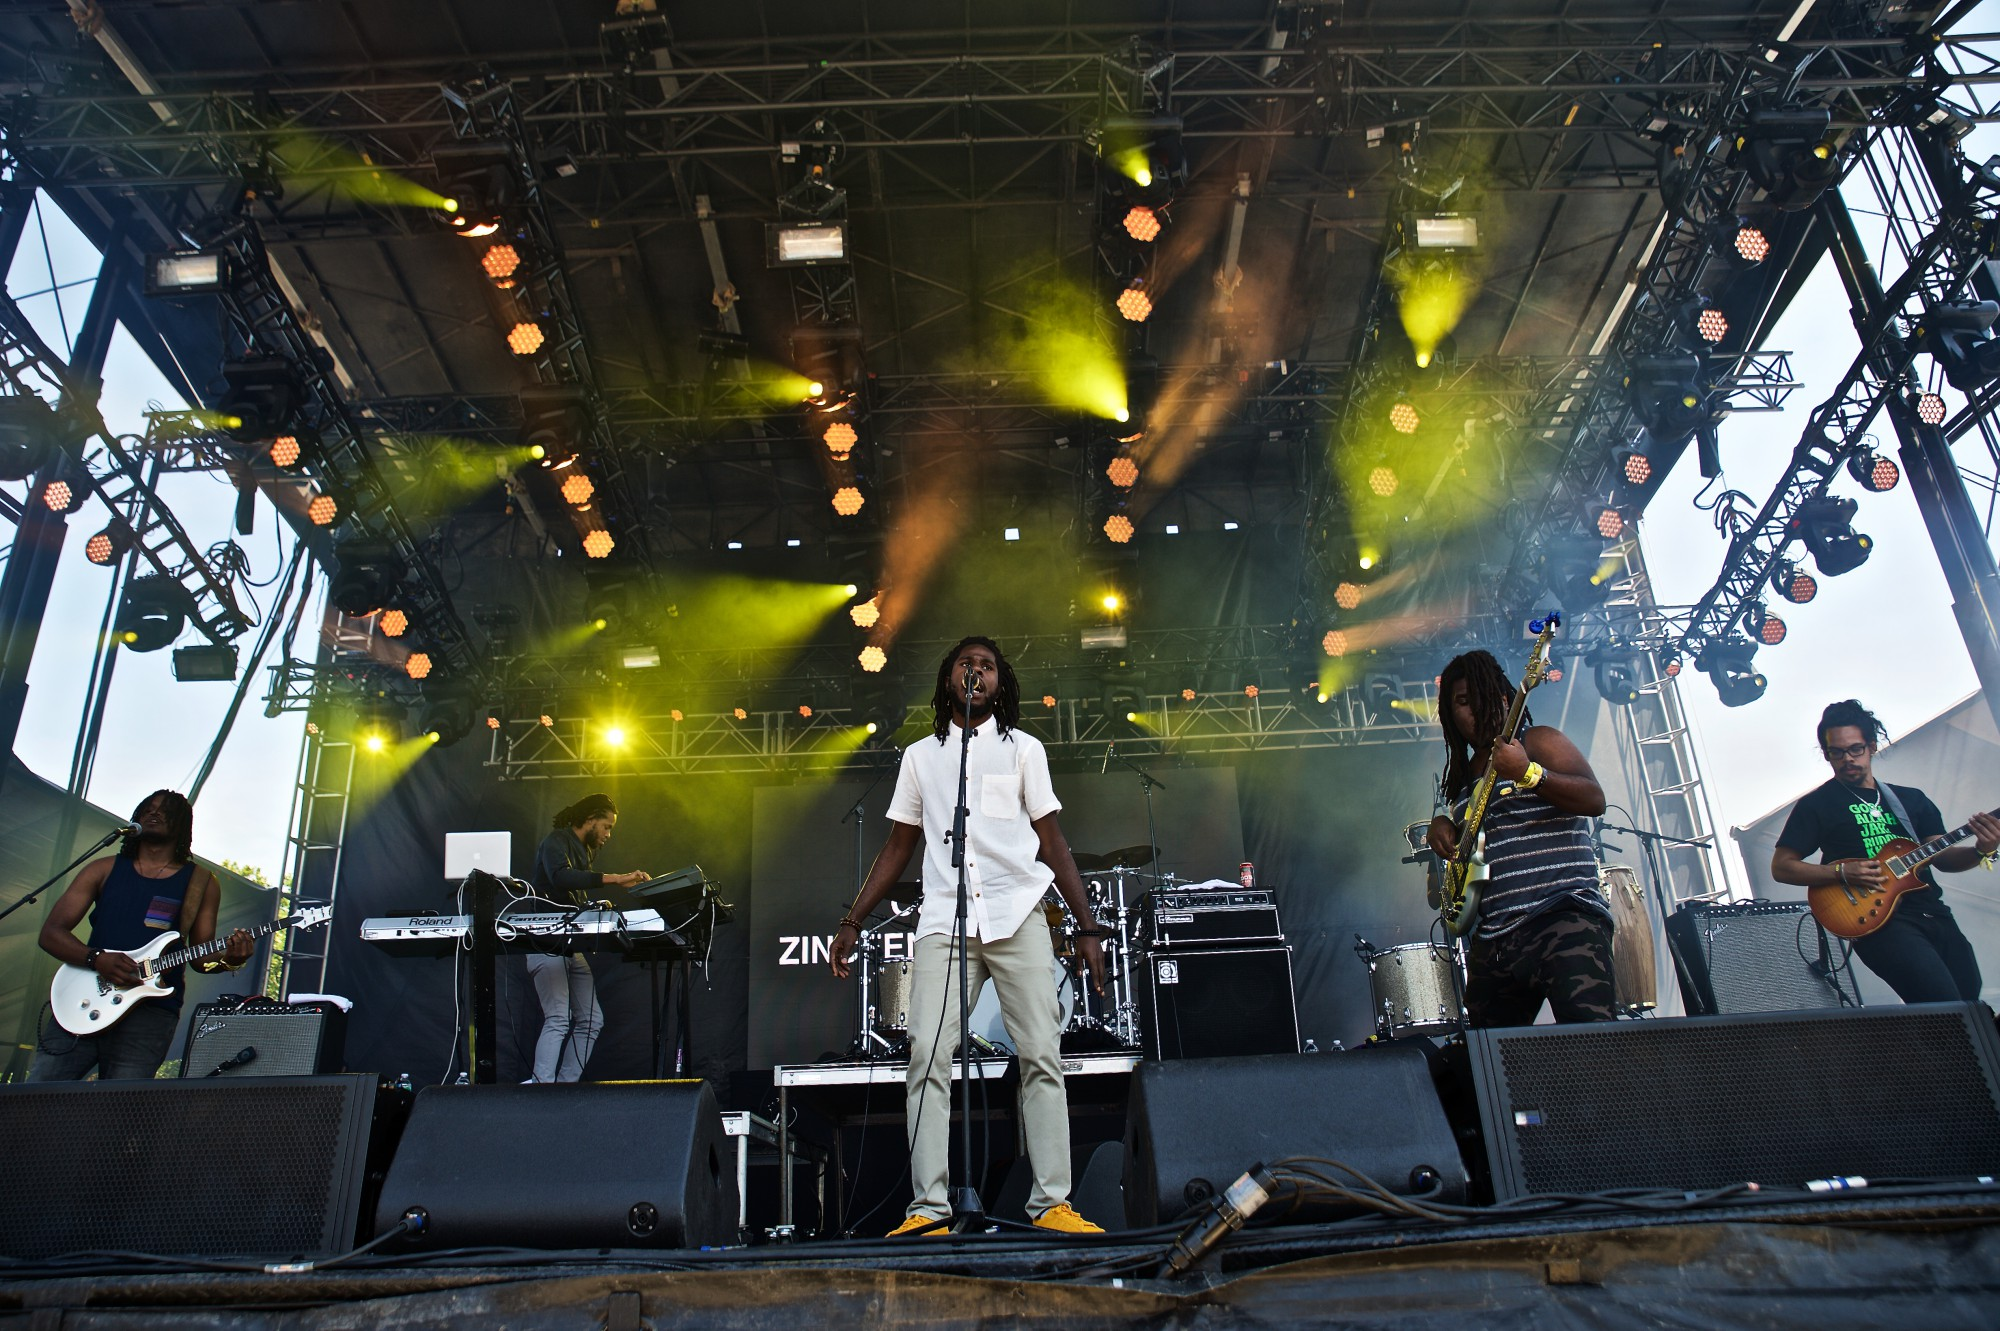 Chronizz and the Zincfence Redemption, featuring lead singer Chronizz  performs at The 2015 Governors Ball Music Festival New York - Day 3